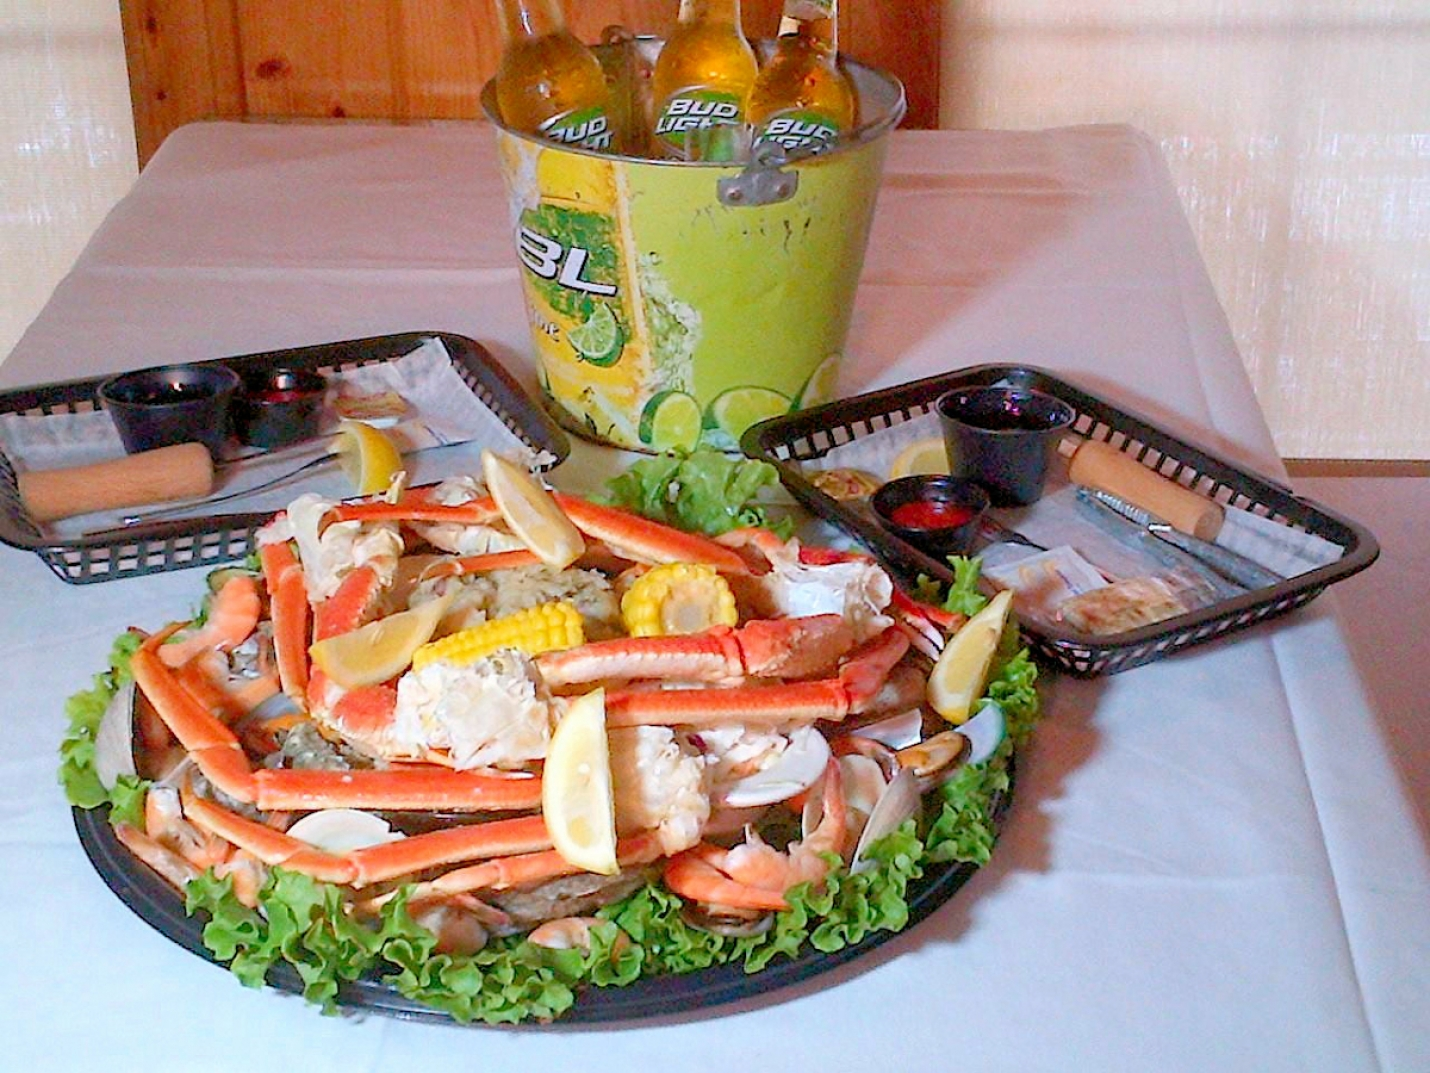 Spotlight On Coastal Cuisine: Come See What's New at Michael's Seafood